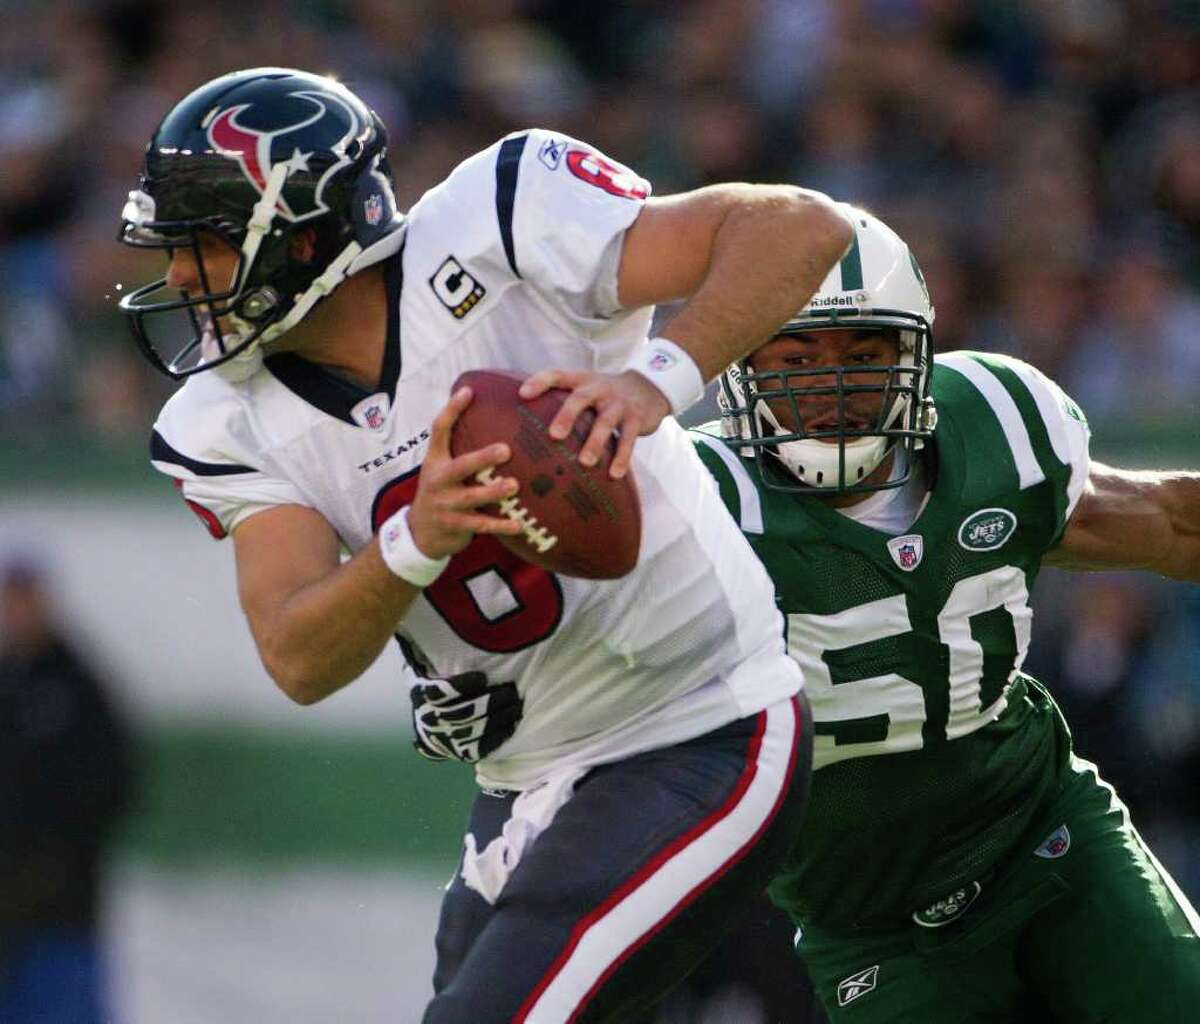 Defensive end Vernon Gholston (50) played three seasons with the Jets before being released in March. He signed with the Bears in July and was released in August.